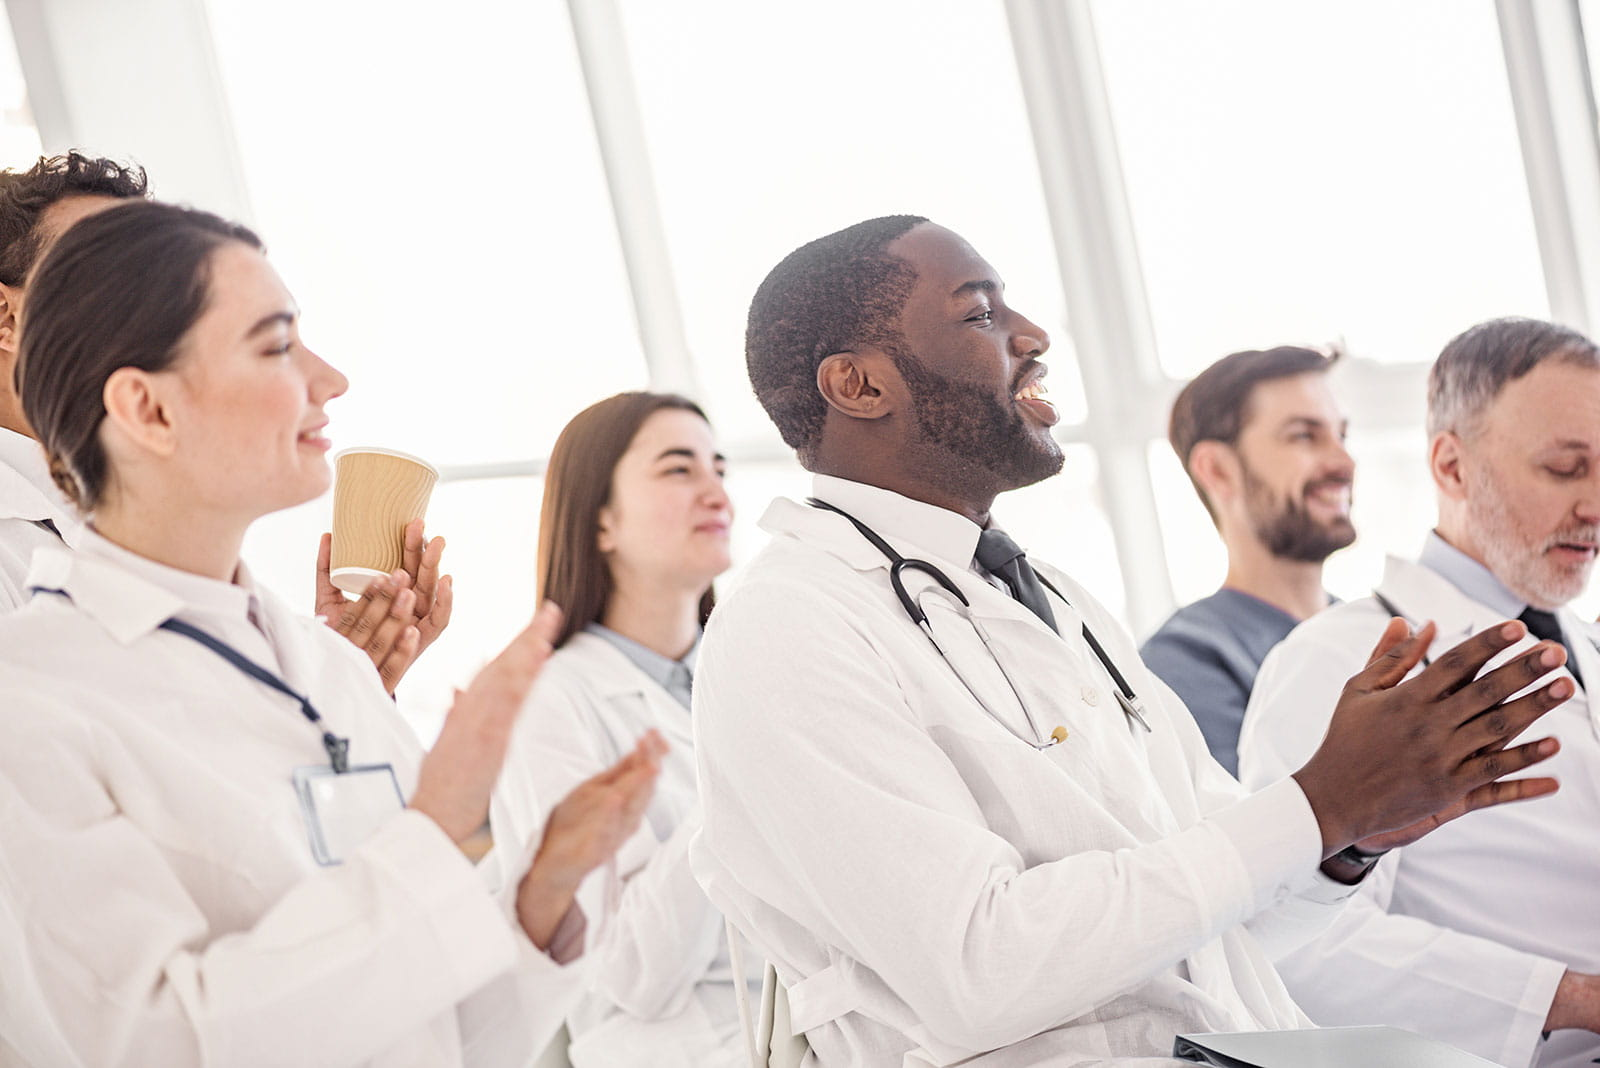 Medical professionals clapping meeting